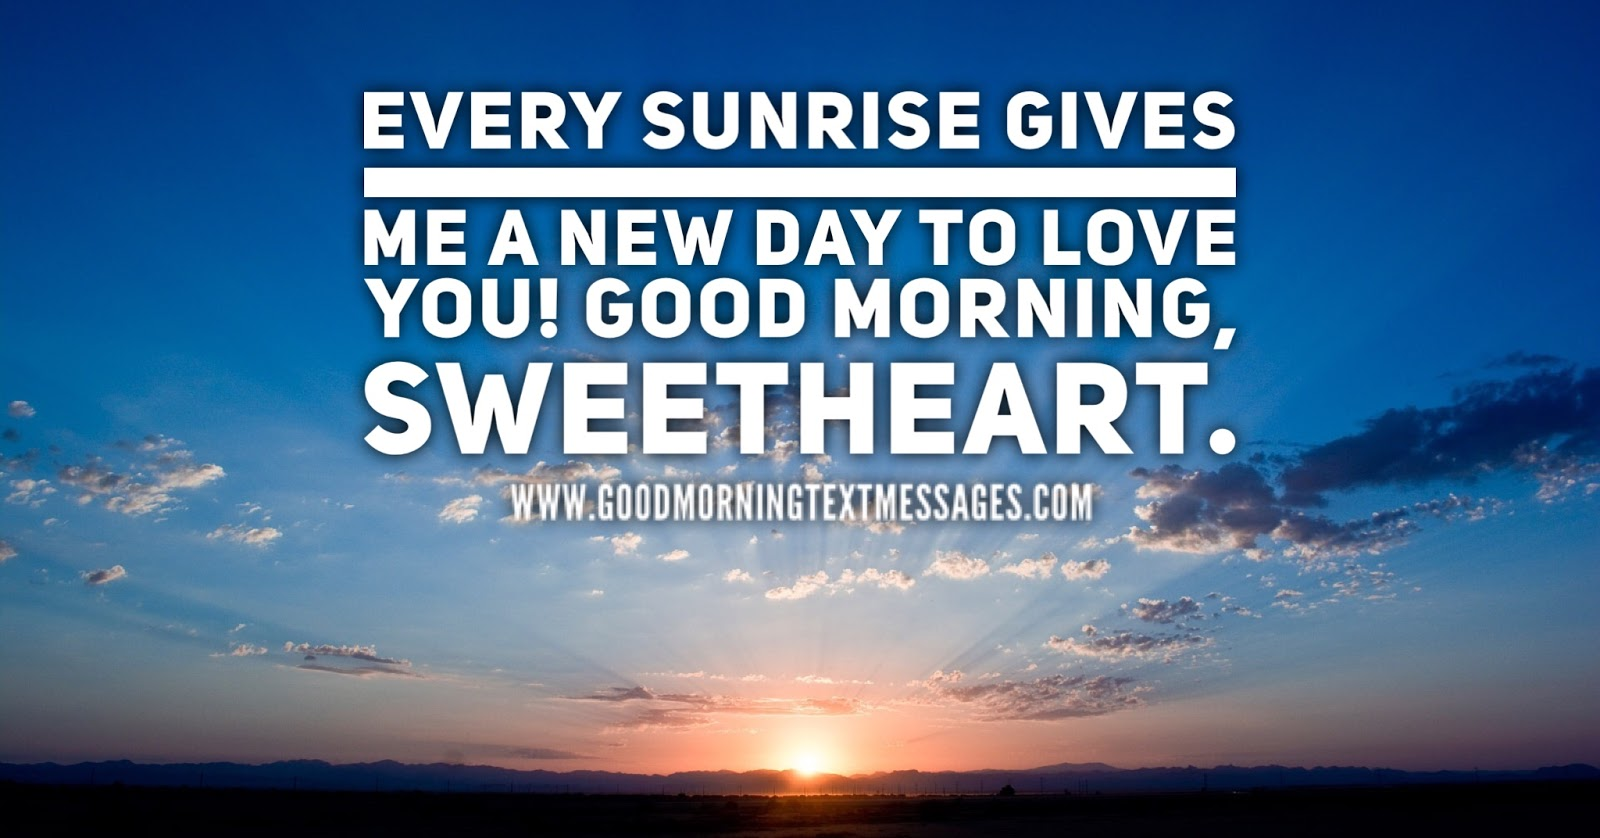 every sunrise gives me a new day to love you good morning sweetheart hope you have an amazing day